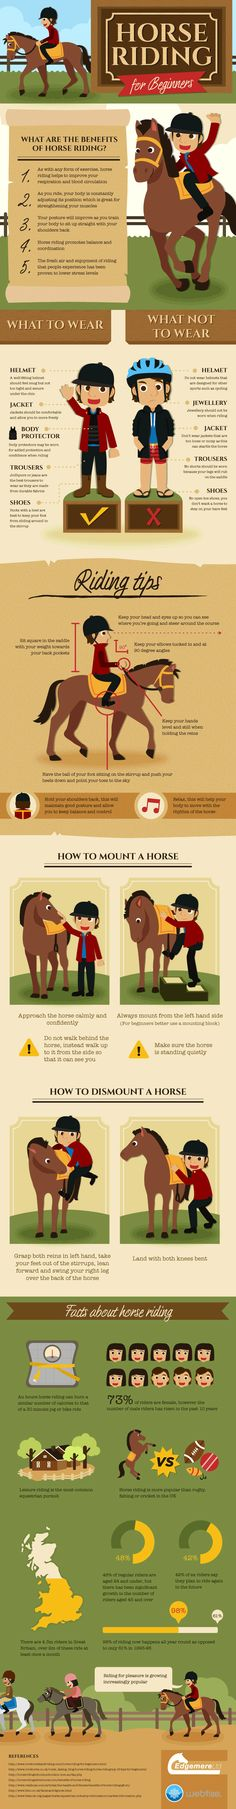 This infographic tells you all you need to know as a new rider. Find out the correct riding position, how to mount and dismount a horse and the correc